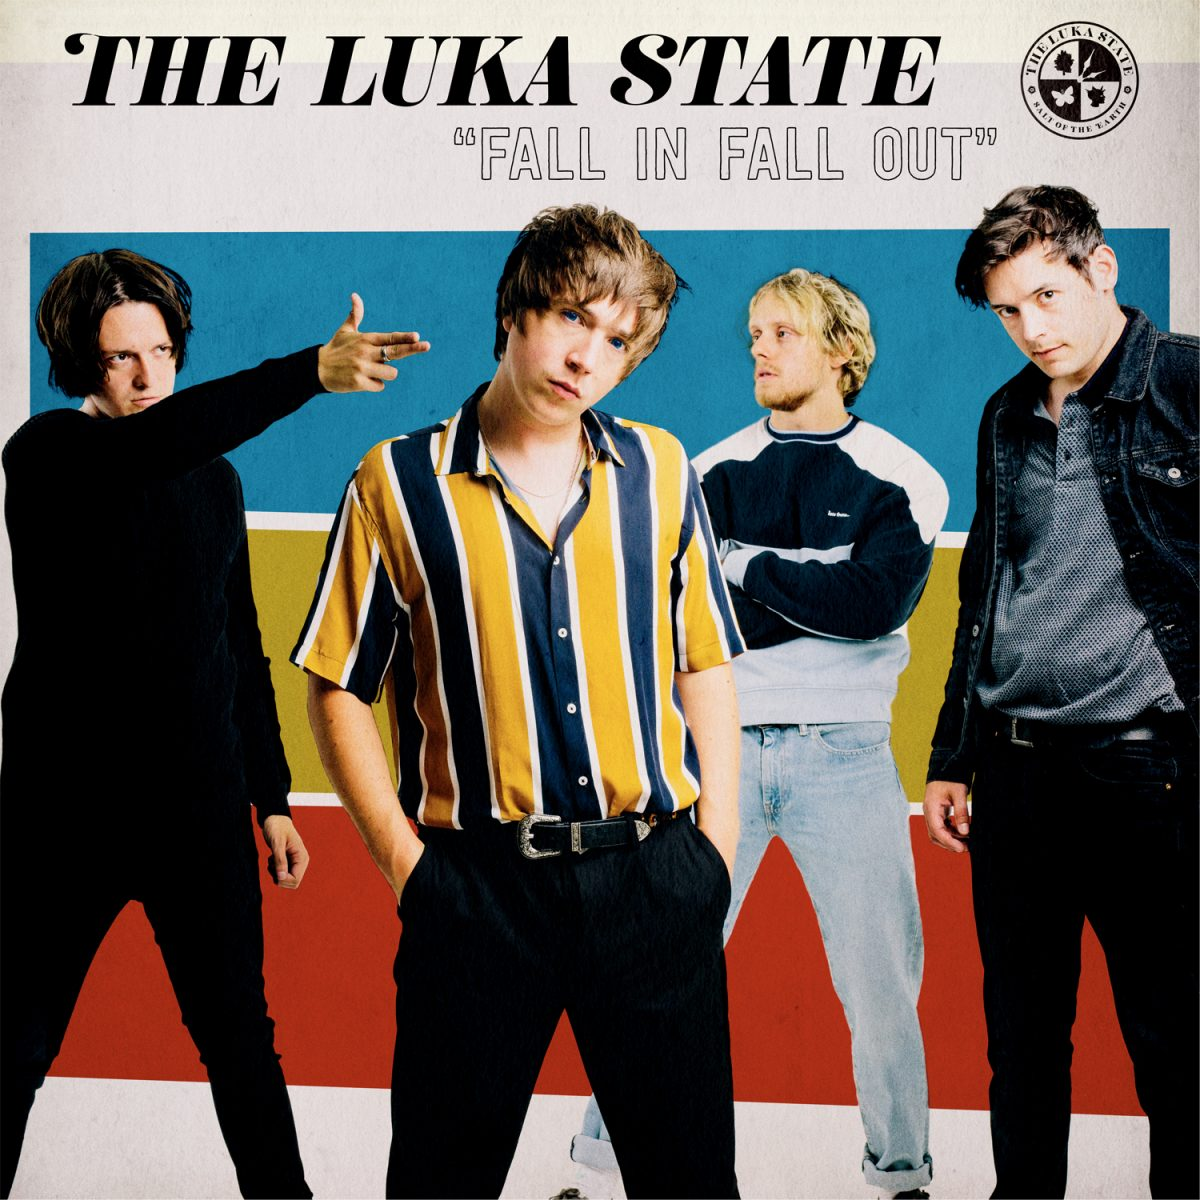 the-luka-state-fall-in-fall-out-album-review